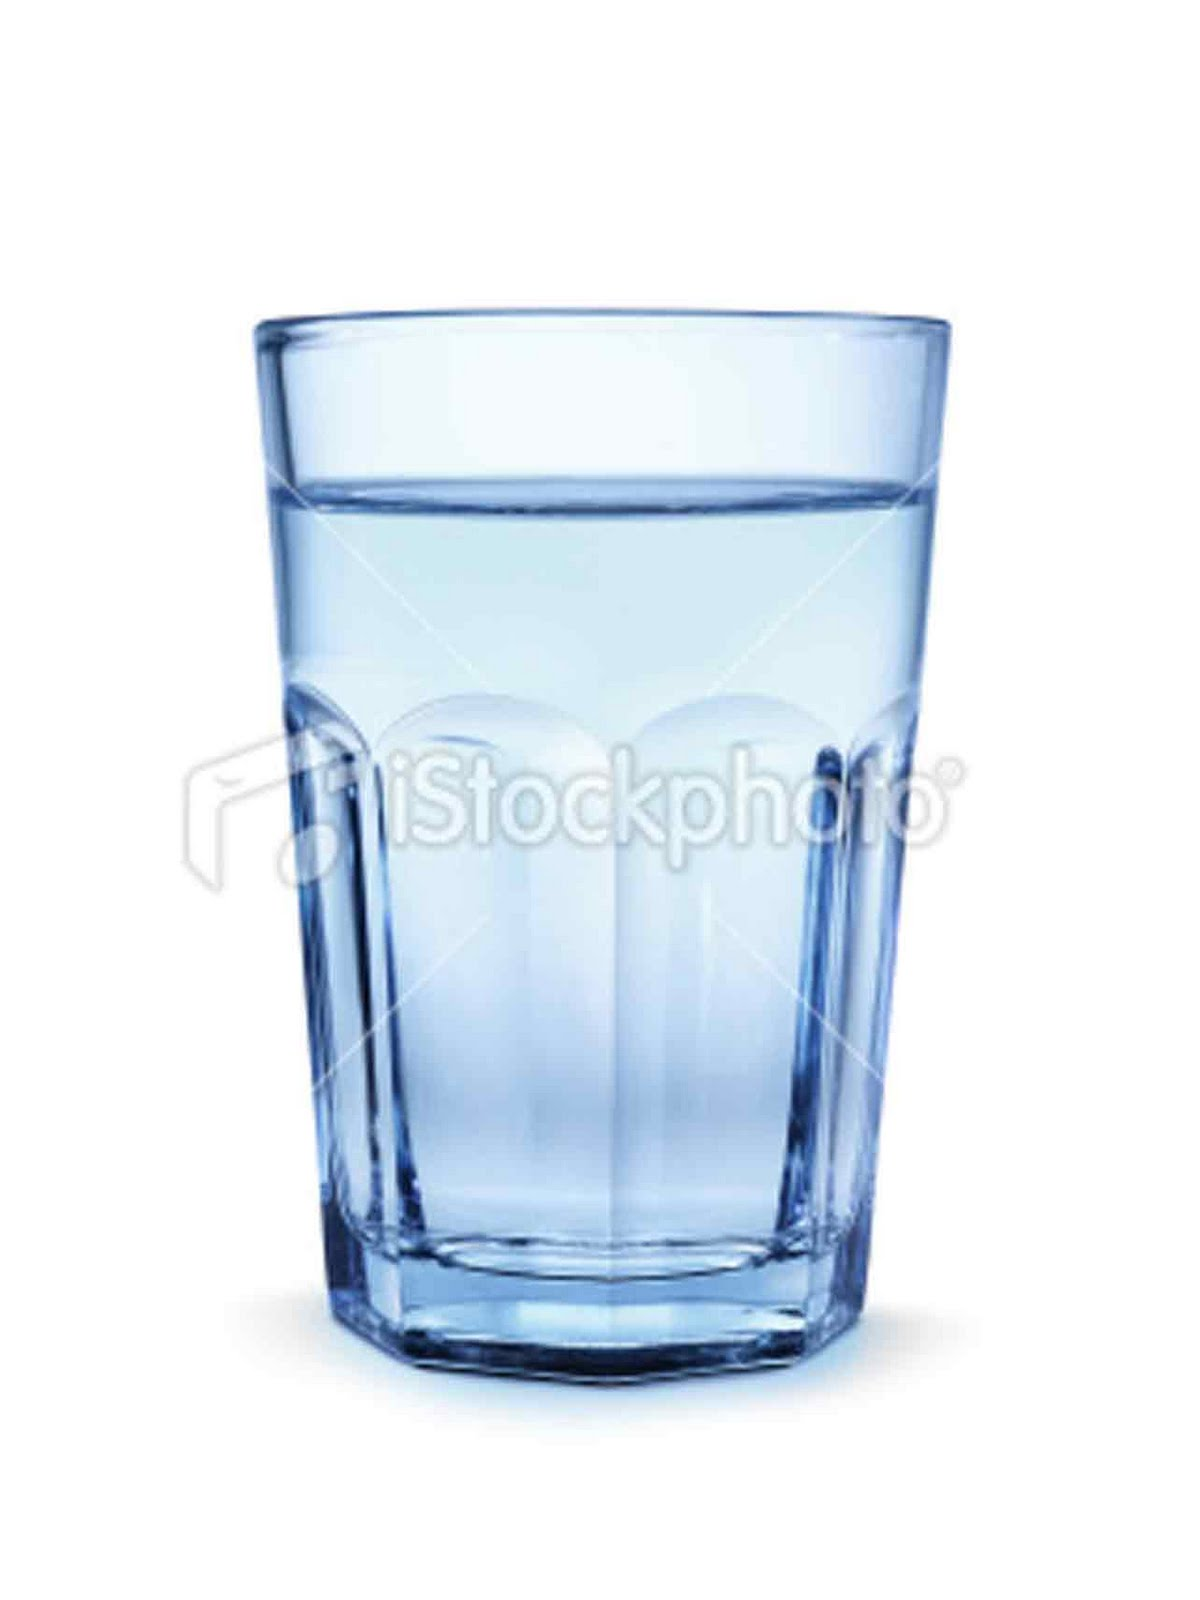 11 glass of water icon images glass water drinking for Water glass images